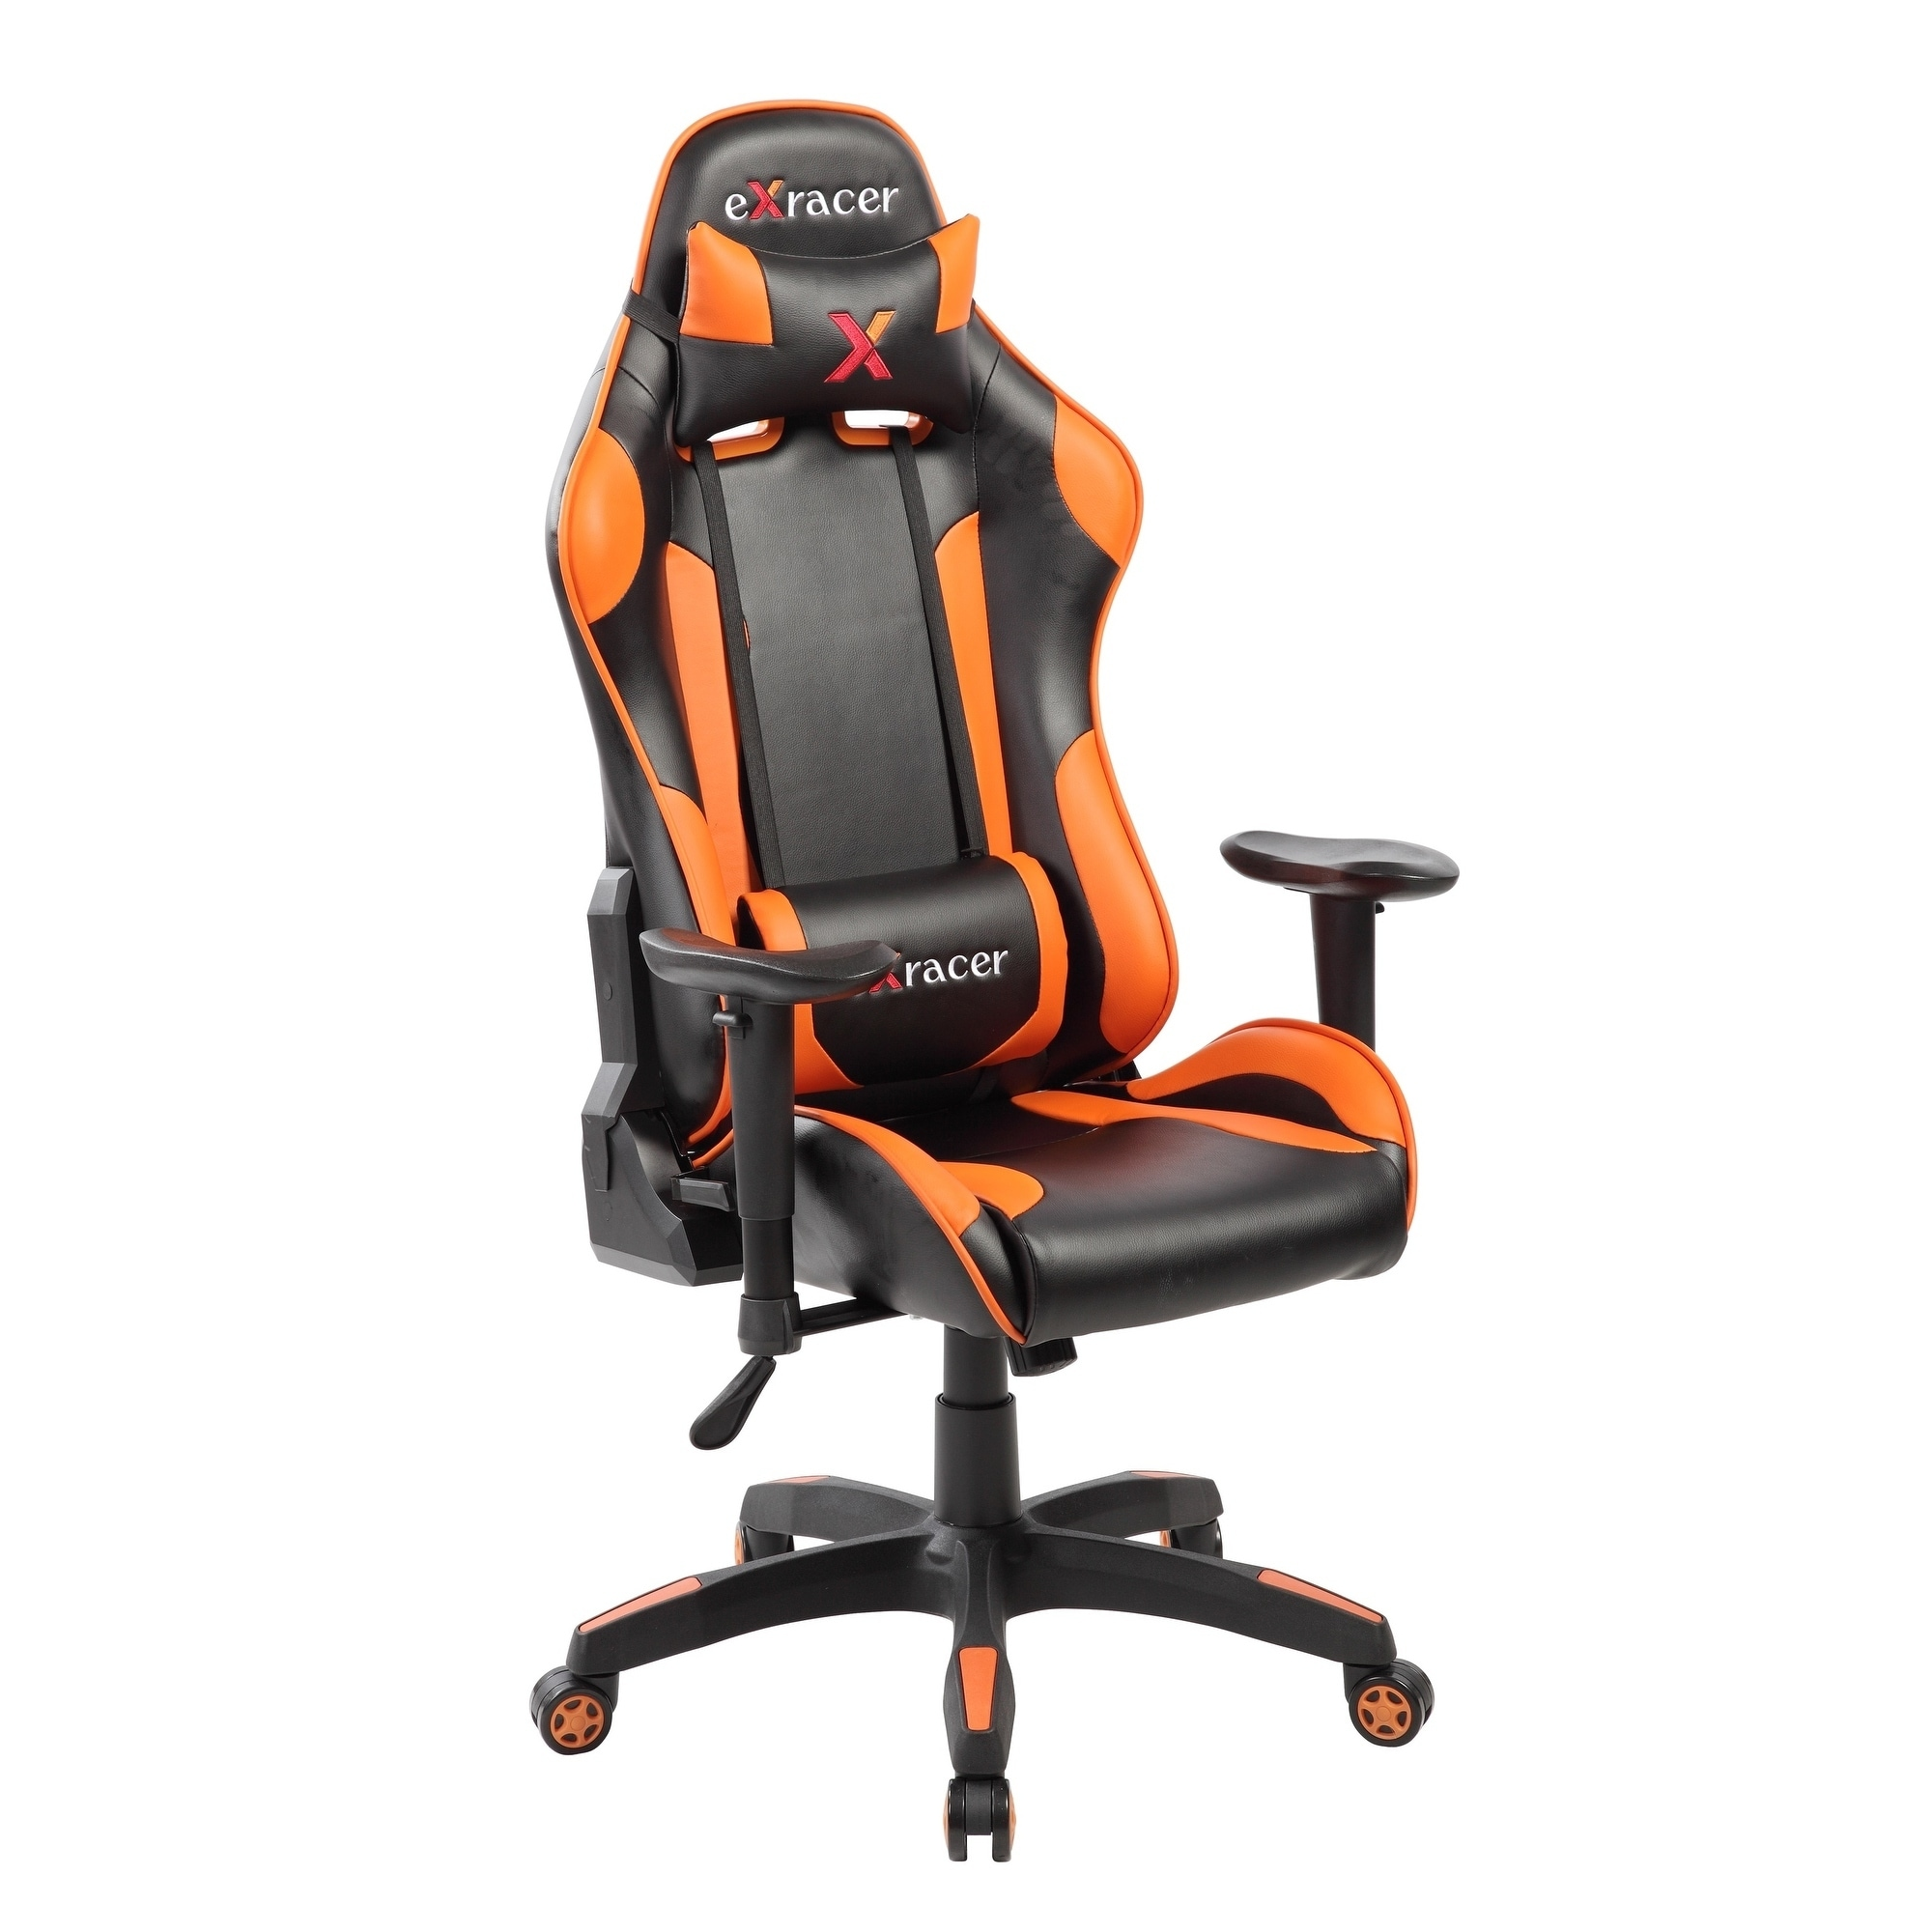 Charmant Shop Adjustable High Back Racing Ergonomic Gaming Computer Chair With  Lumbar Support   Free Shipping Today   Overstock.com   19502640